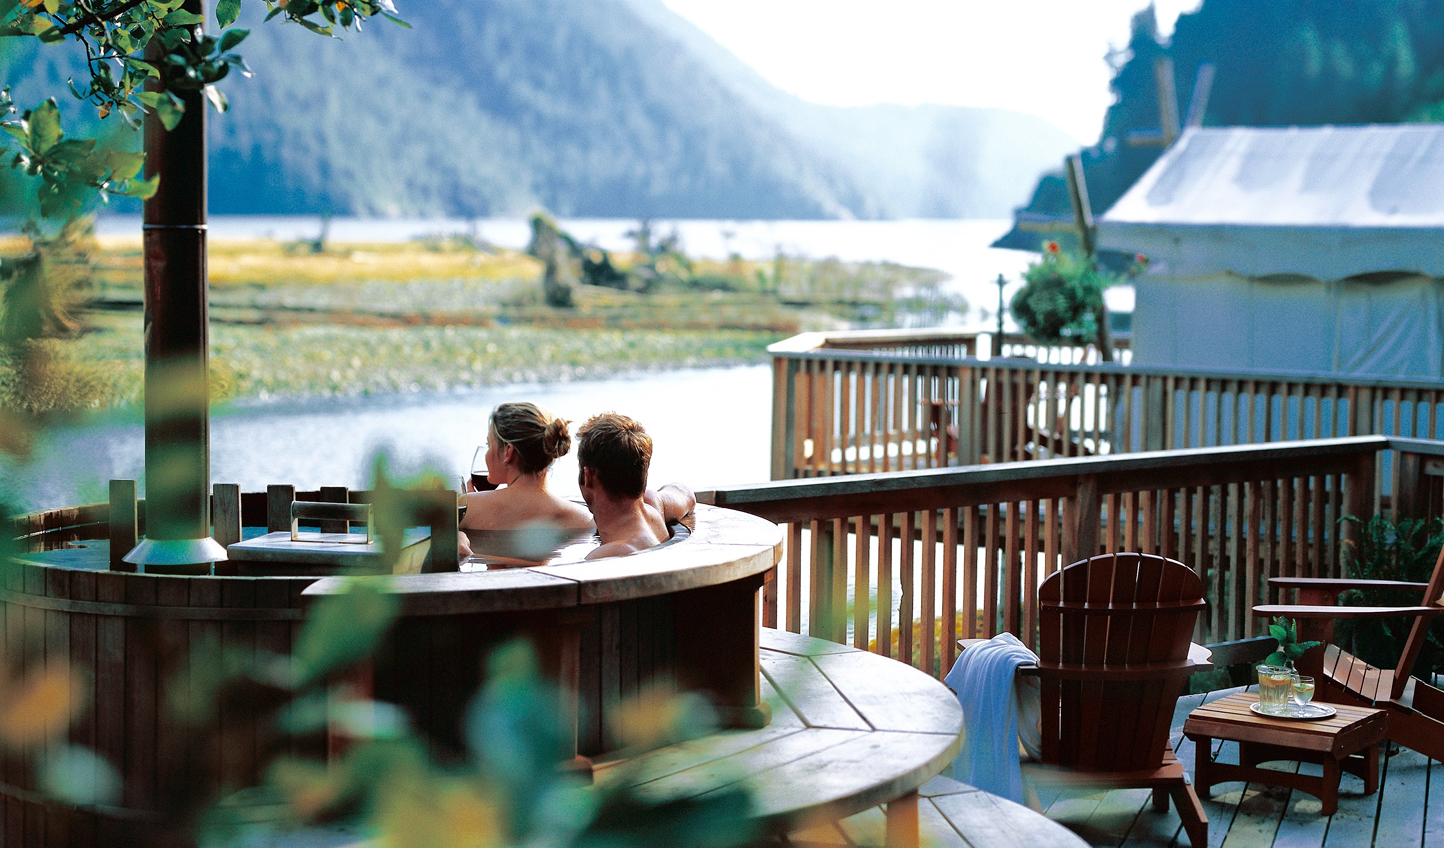 Soak away all your stresses in the wood-fired hot tub whilst gazing over the idyllic views